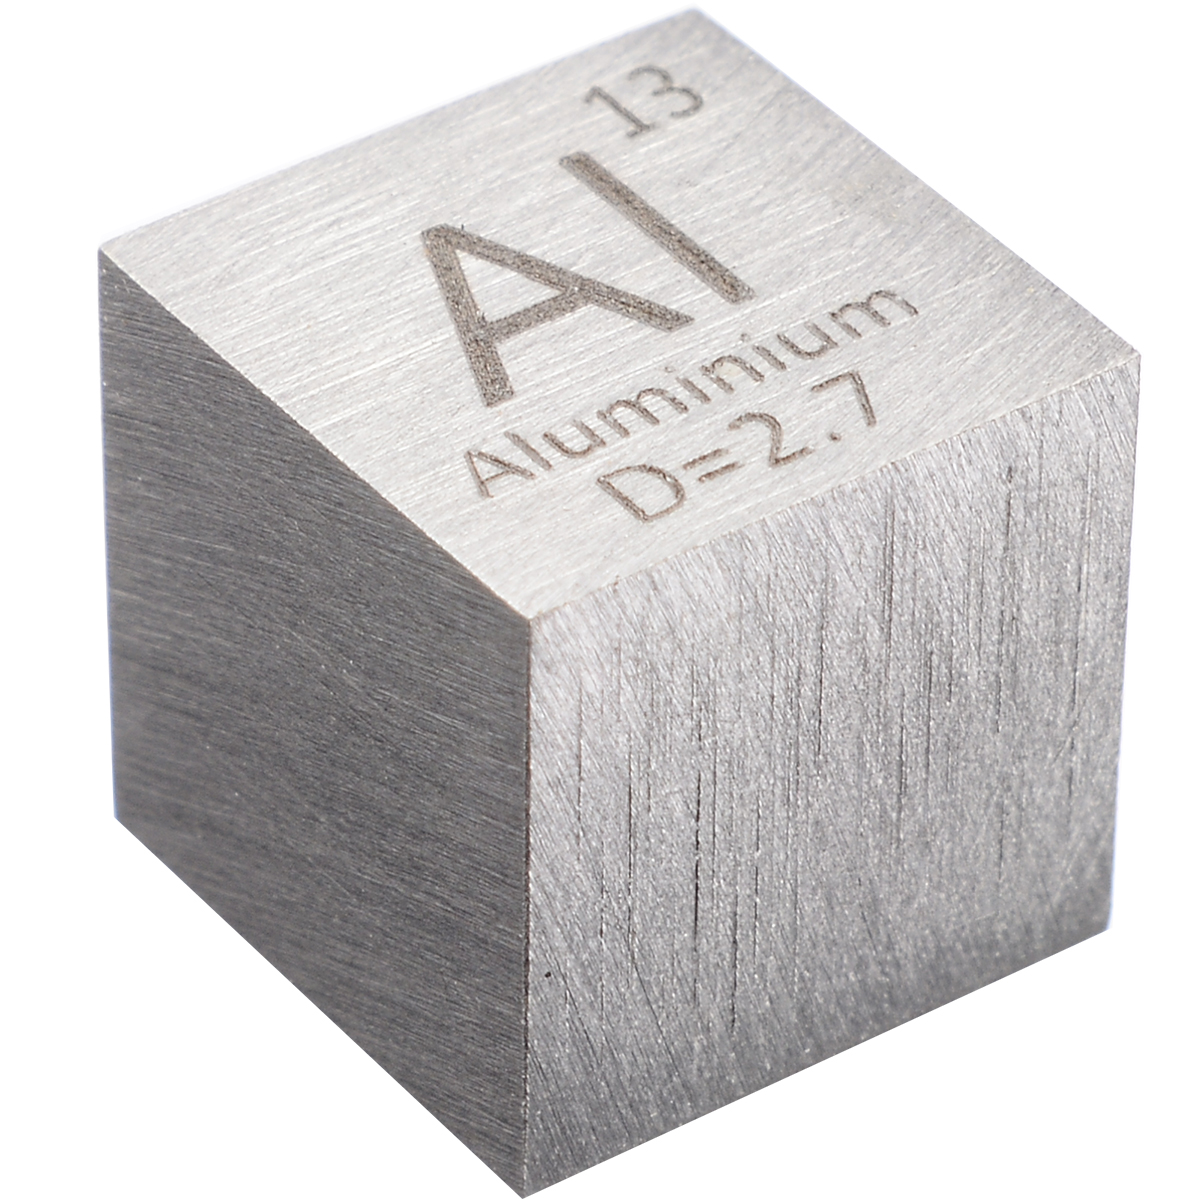 1Pcs 99.99% High Purity Element Periodic Table Cube Aluminum 10mm Cube Carved Element Periodic Table